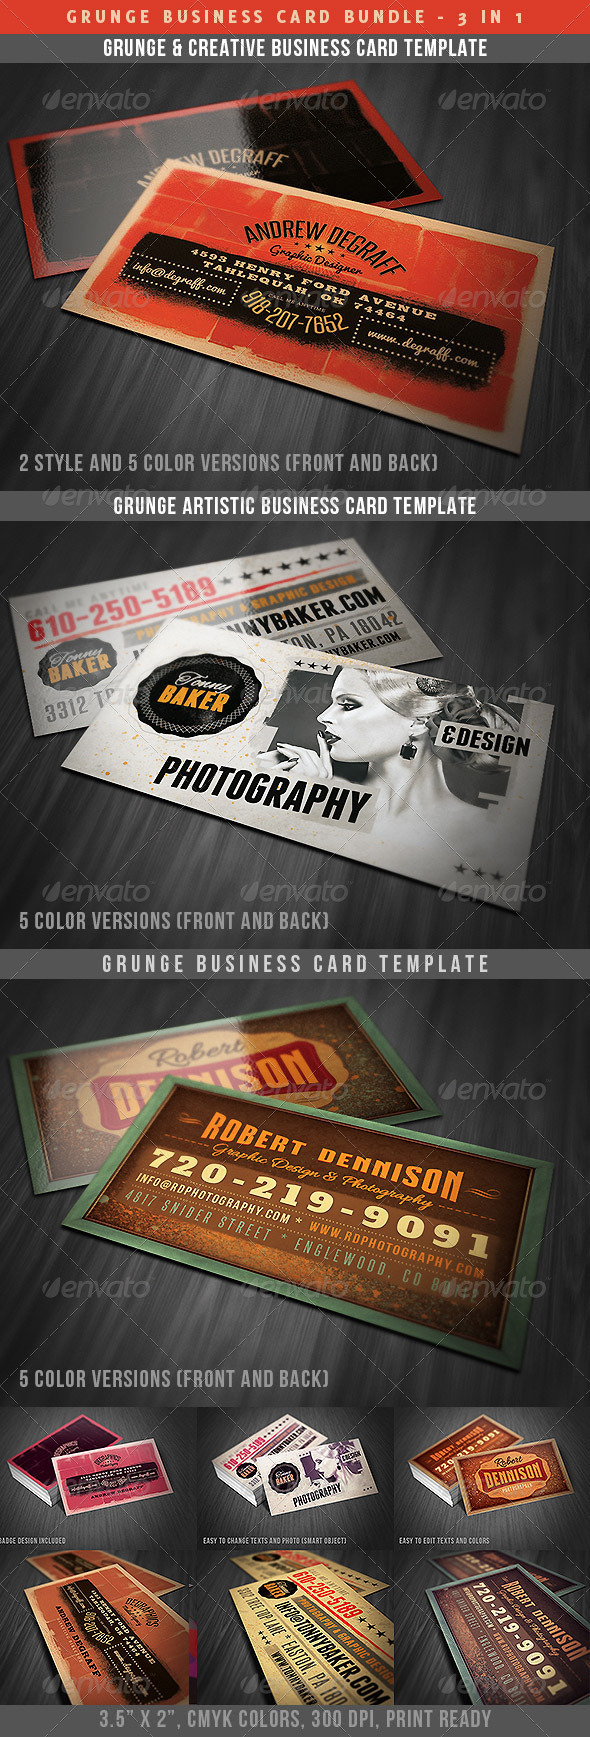 GraphicRiver Grunge Business Cards Bundle 4747683